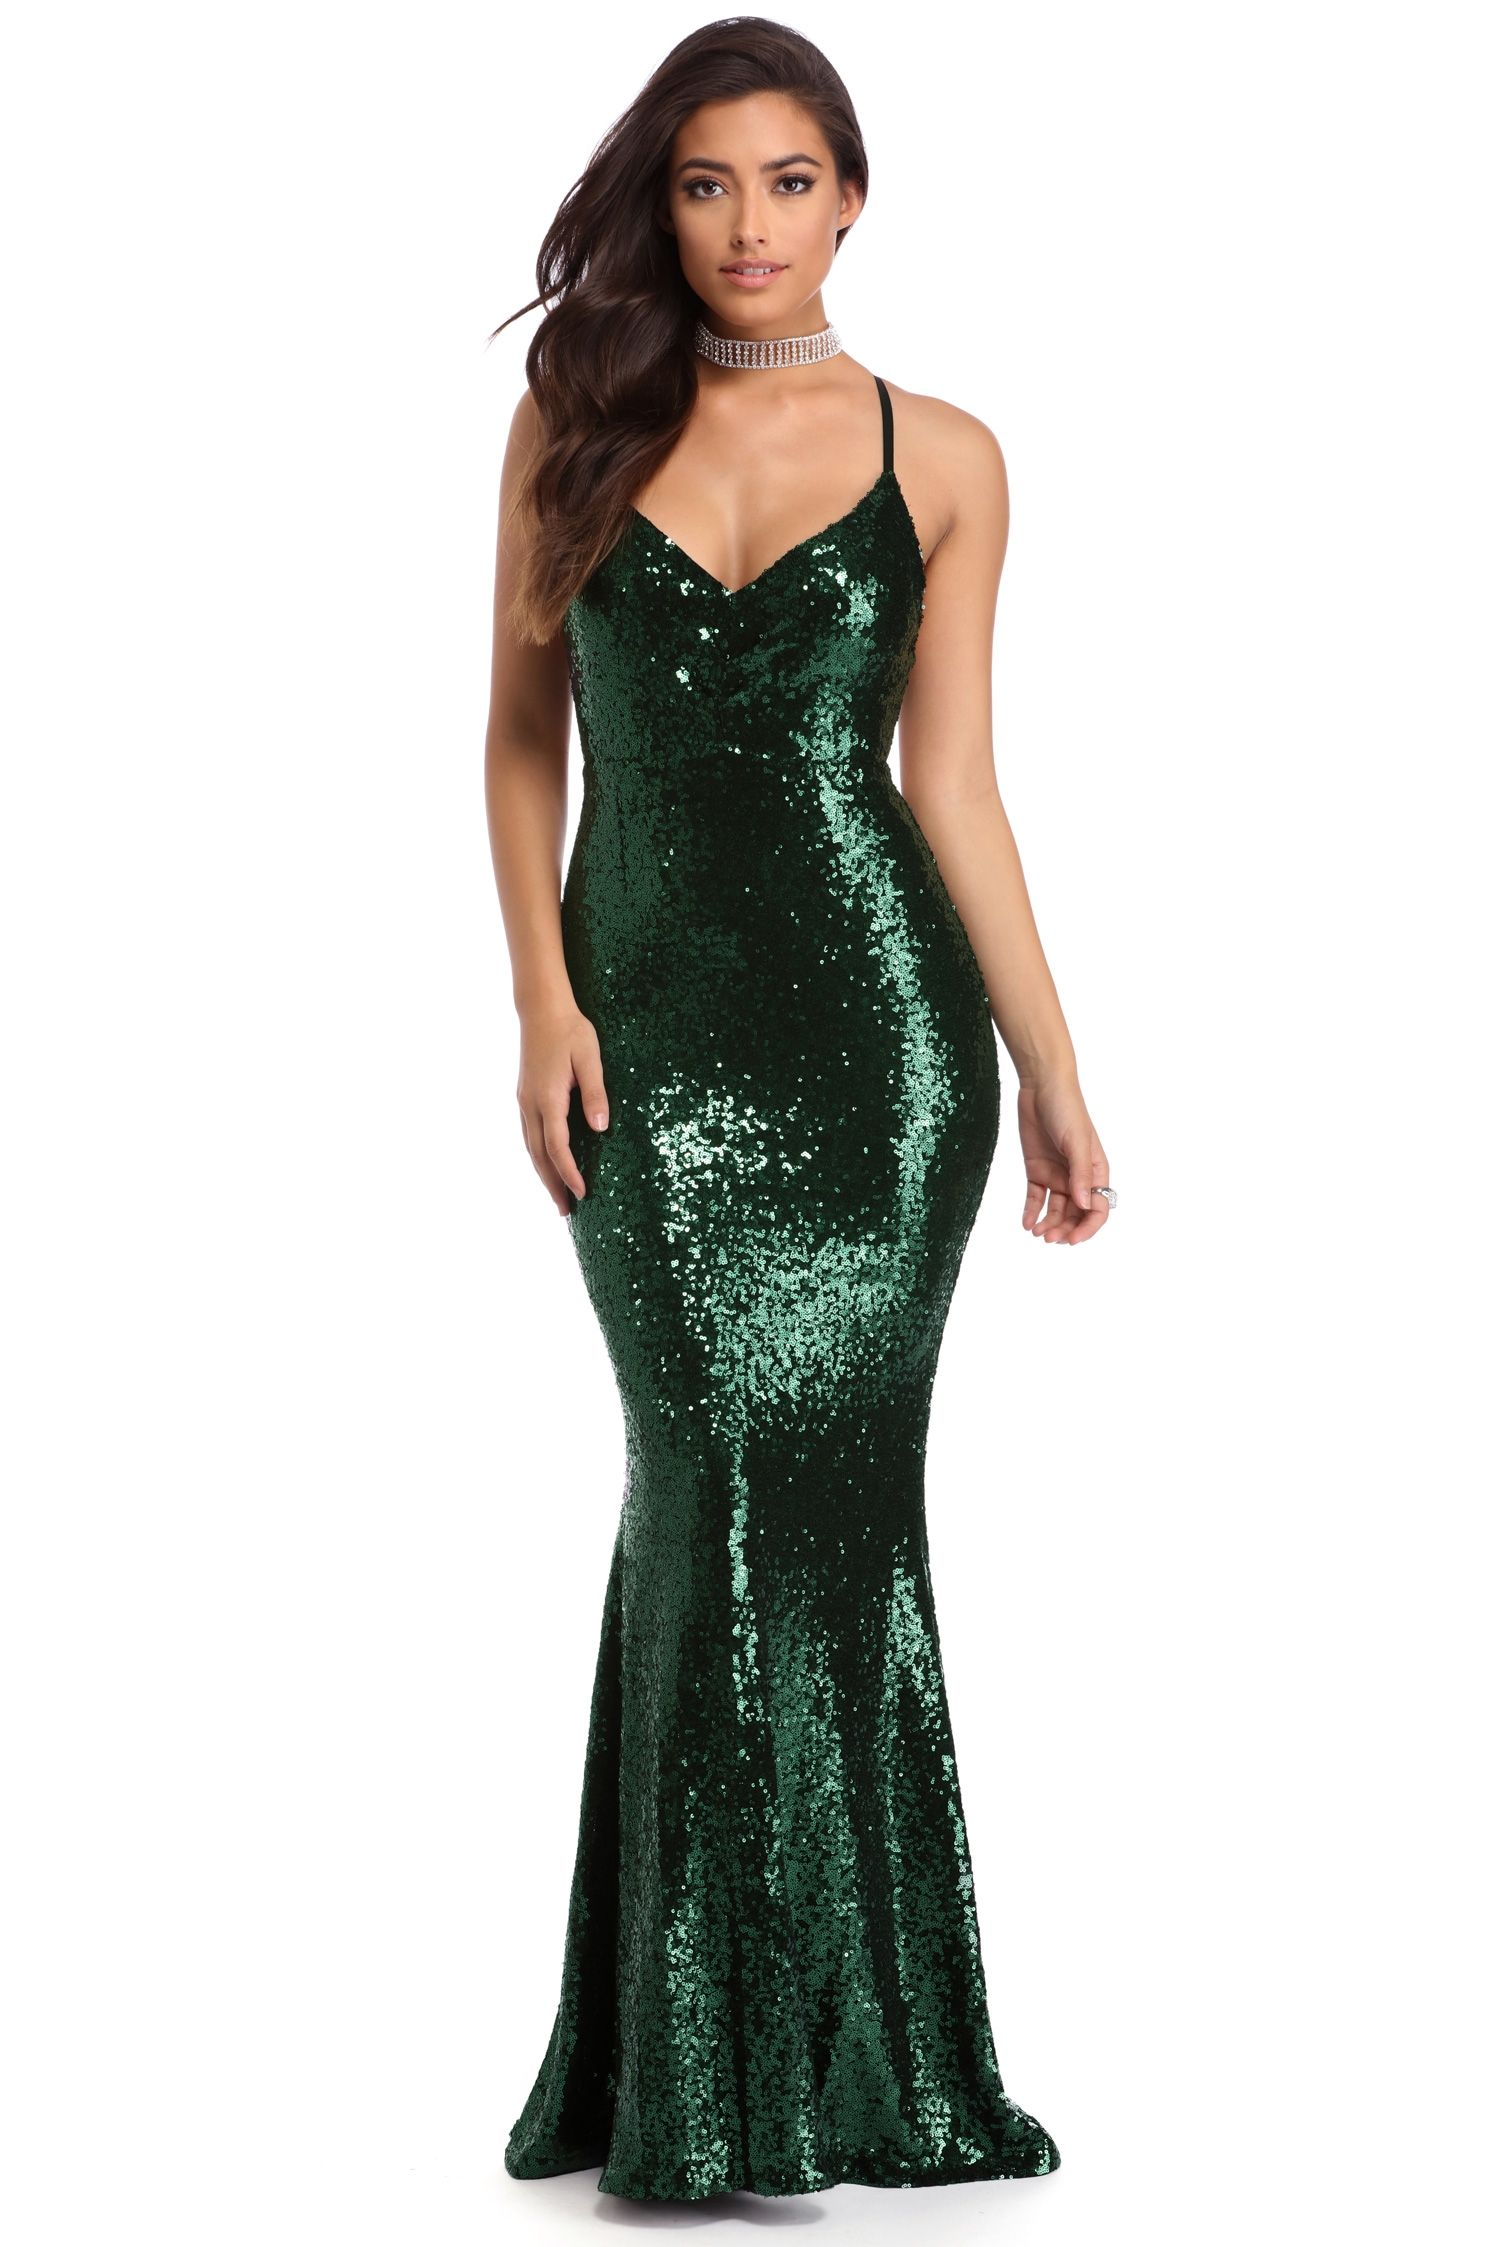 Ivy Green Siren Dress  f8b2b2bdeed2